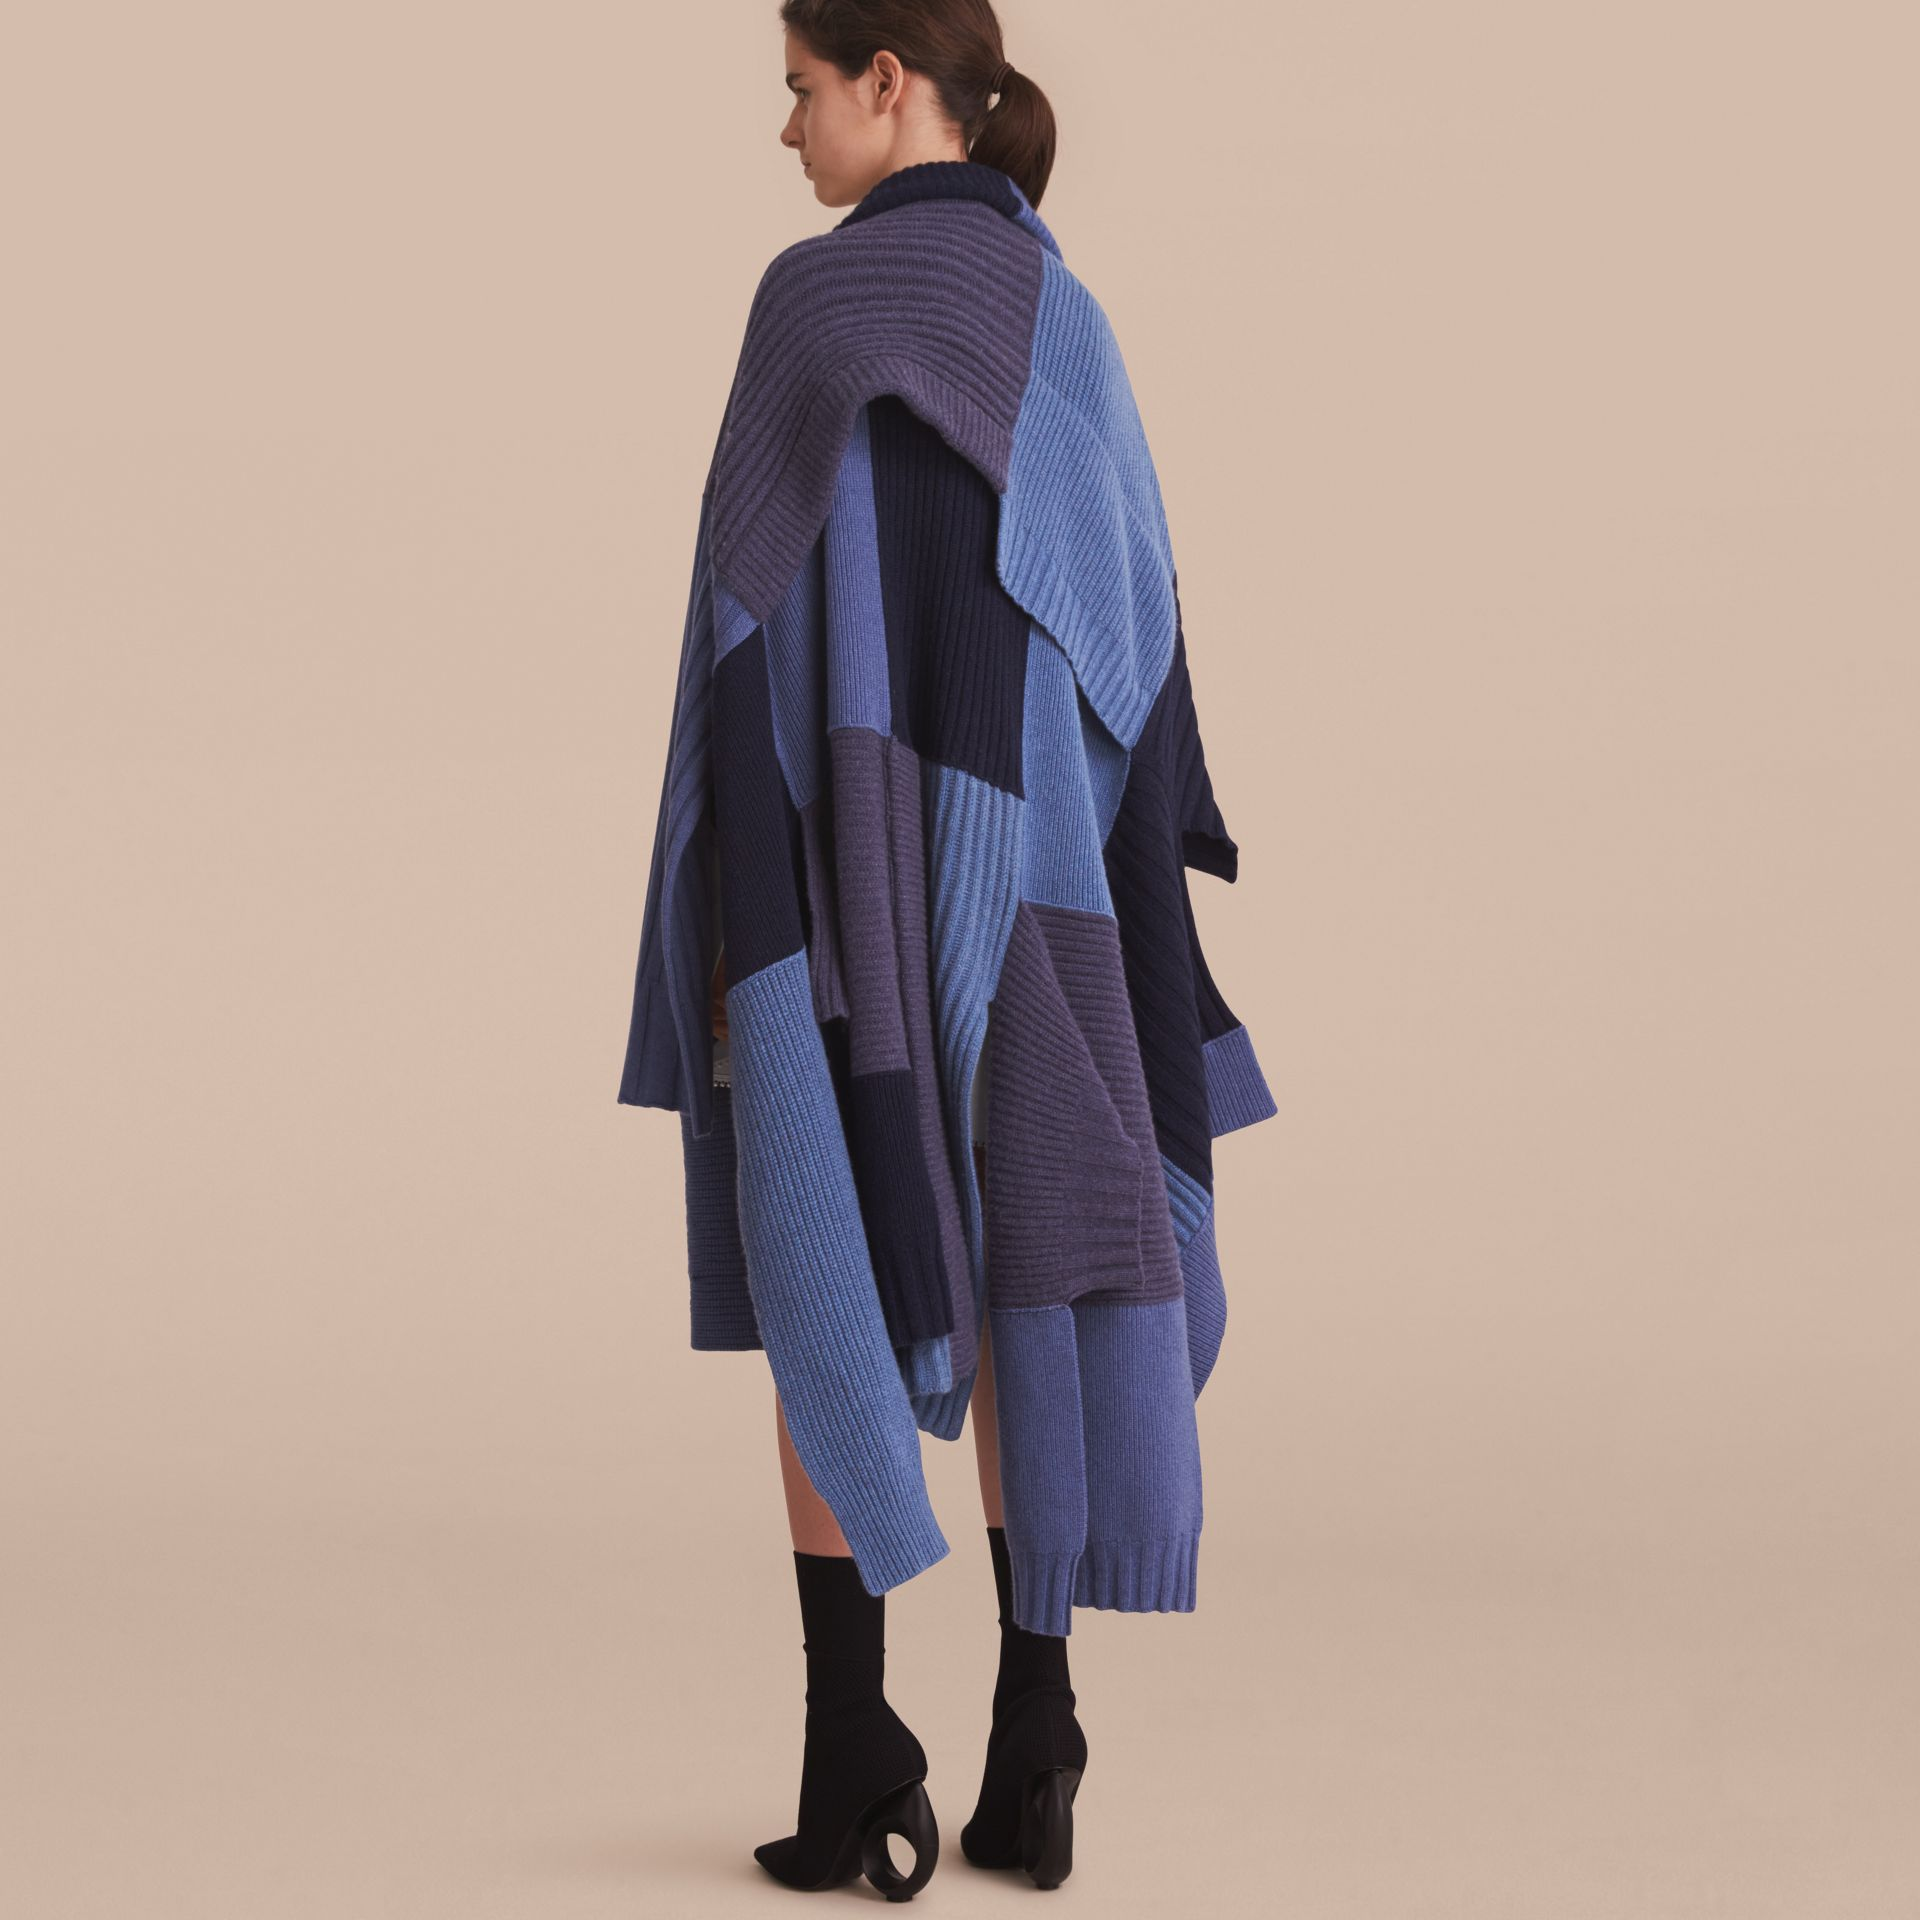 Wool Cashmere Patchwork Poncho in Carbon Blue - Women | Burberry Singapore - gallery image 3